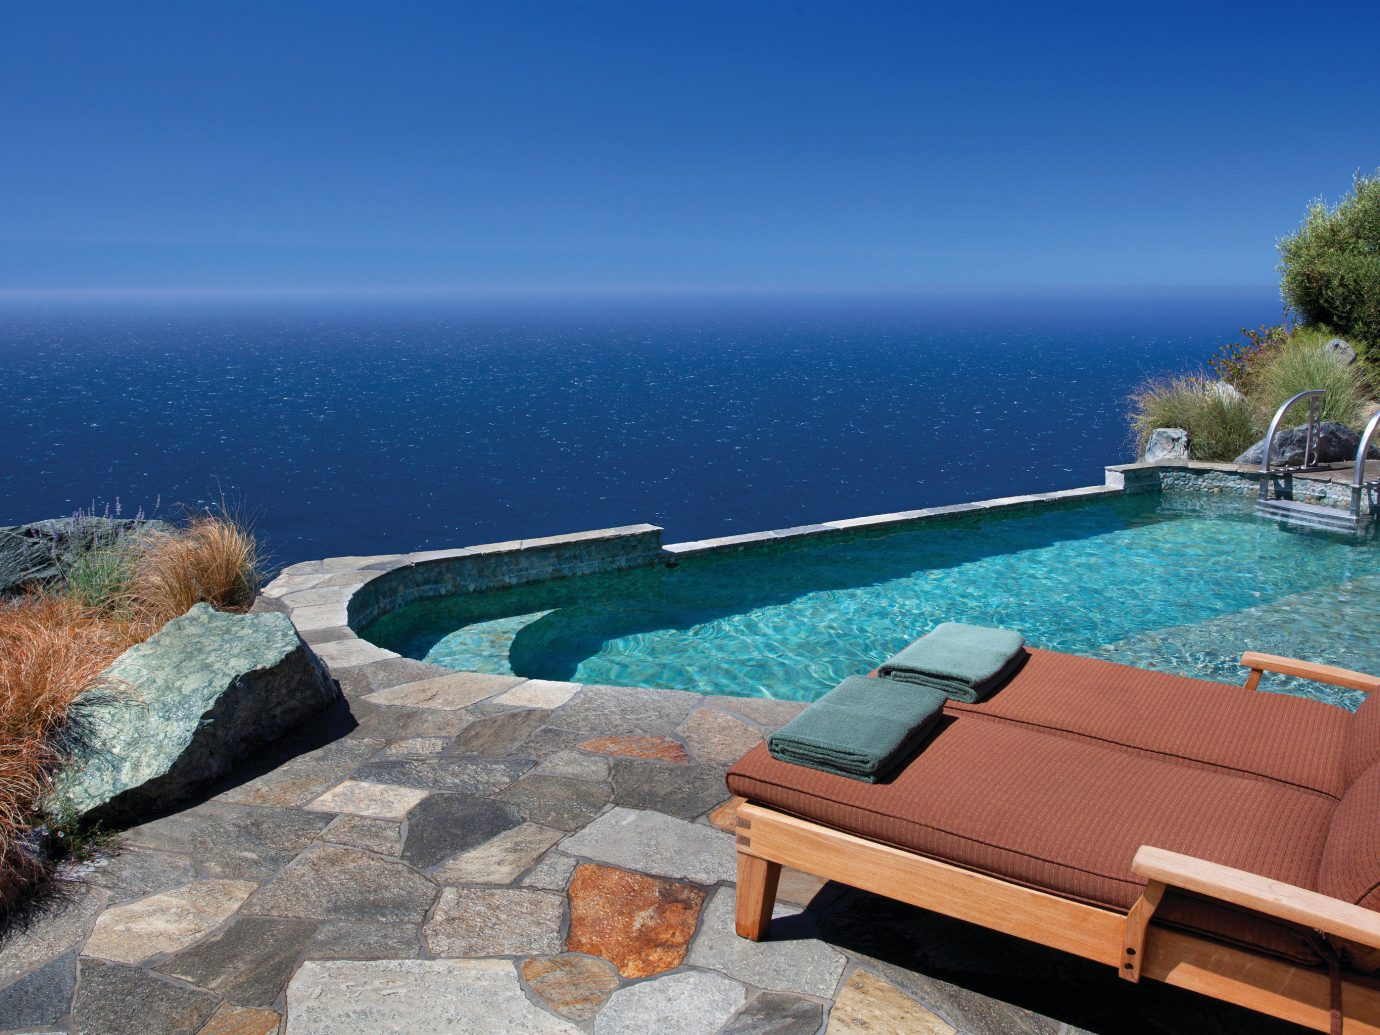 Trip Ideas water sky outdoor swimming pool property Sea Nature vacation Ocean estate Coast bay Villa Resort overlooking